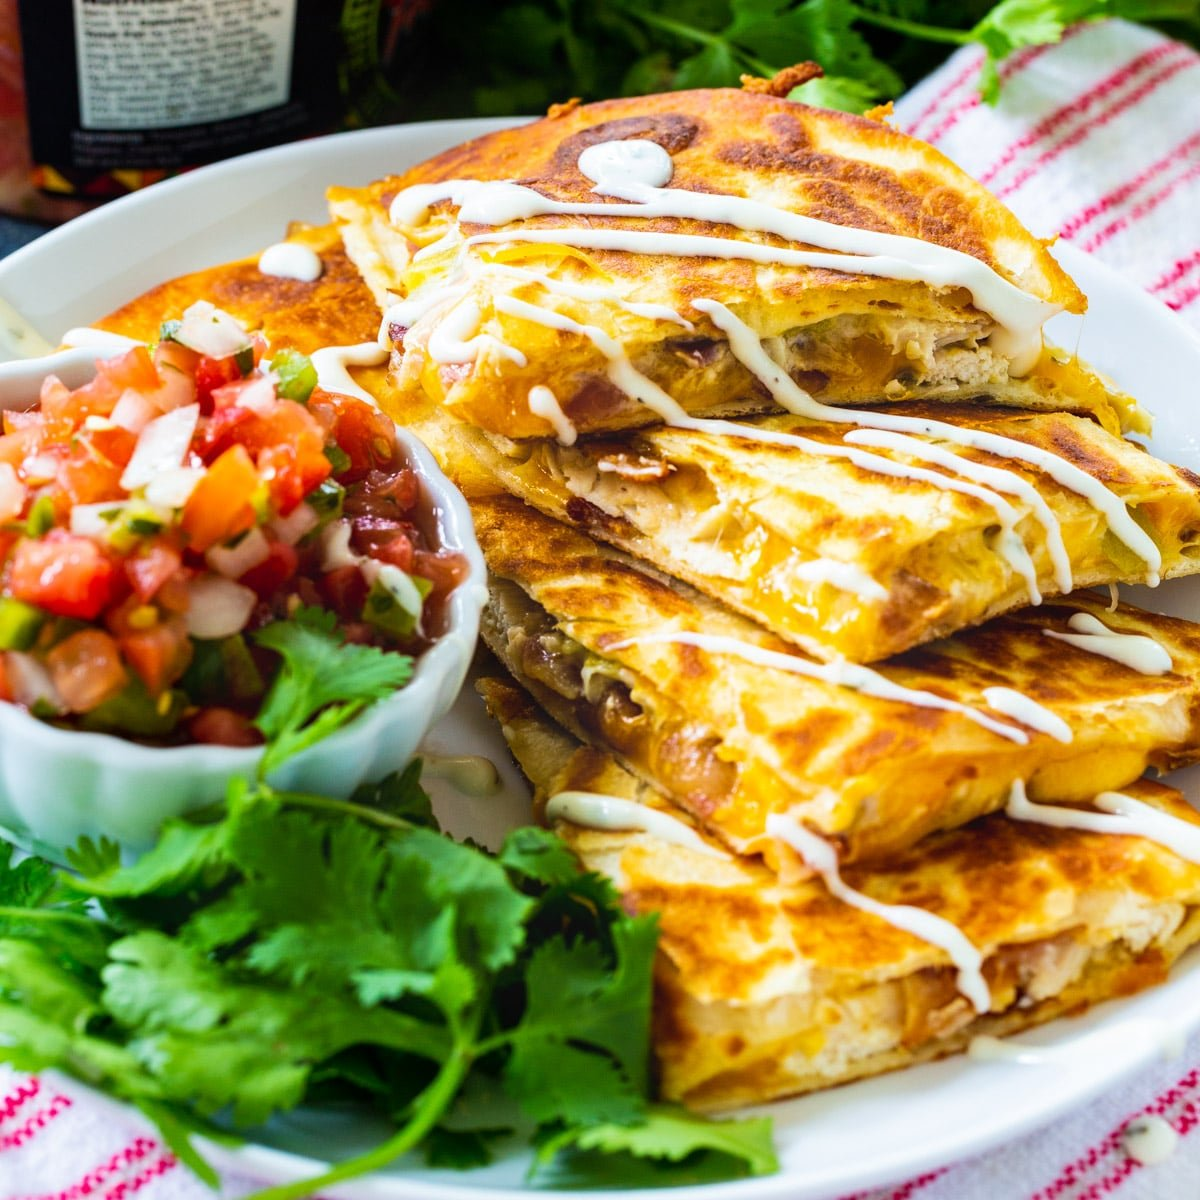 Chicken, Bacon and Ranch Quesadillas cut into triangles and stacked.